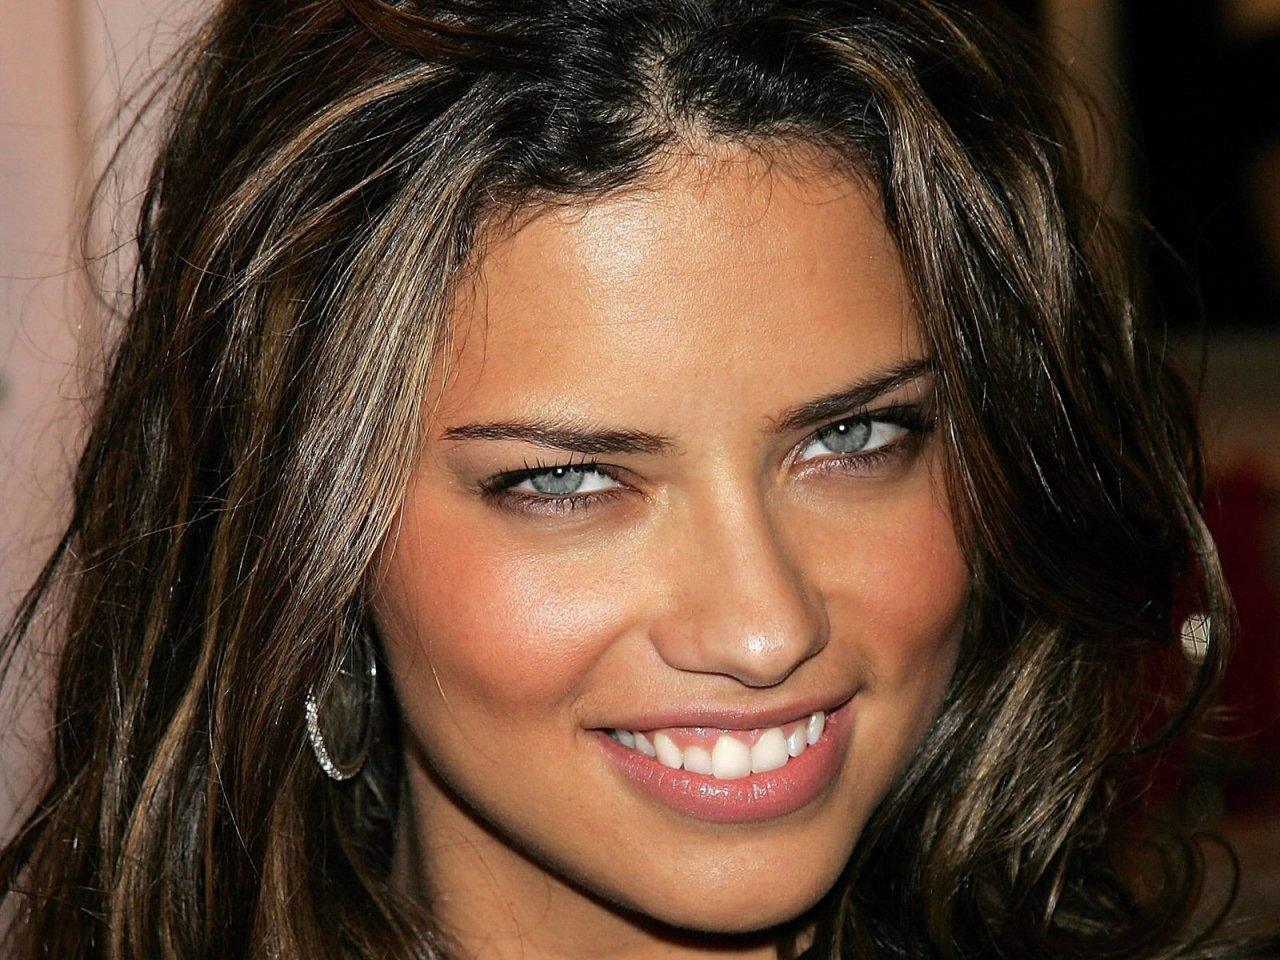 adriana lima beautiful image - photo #42